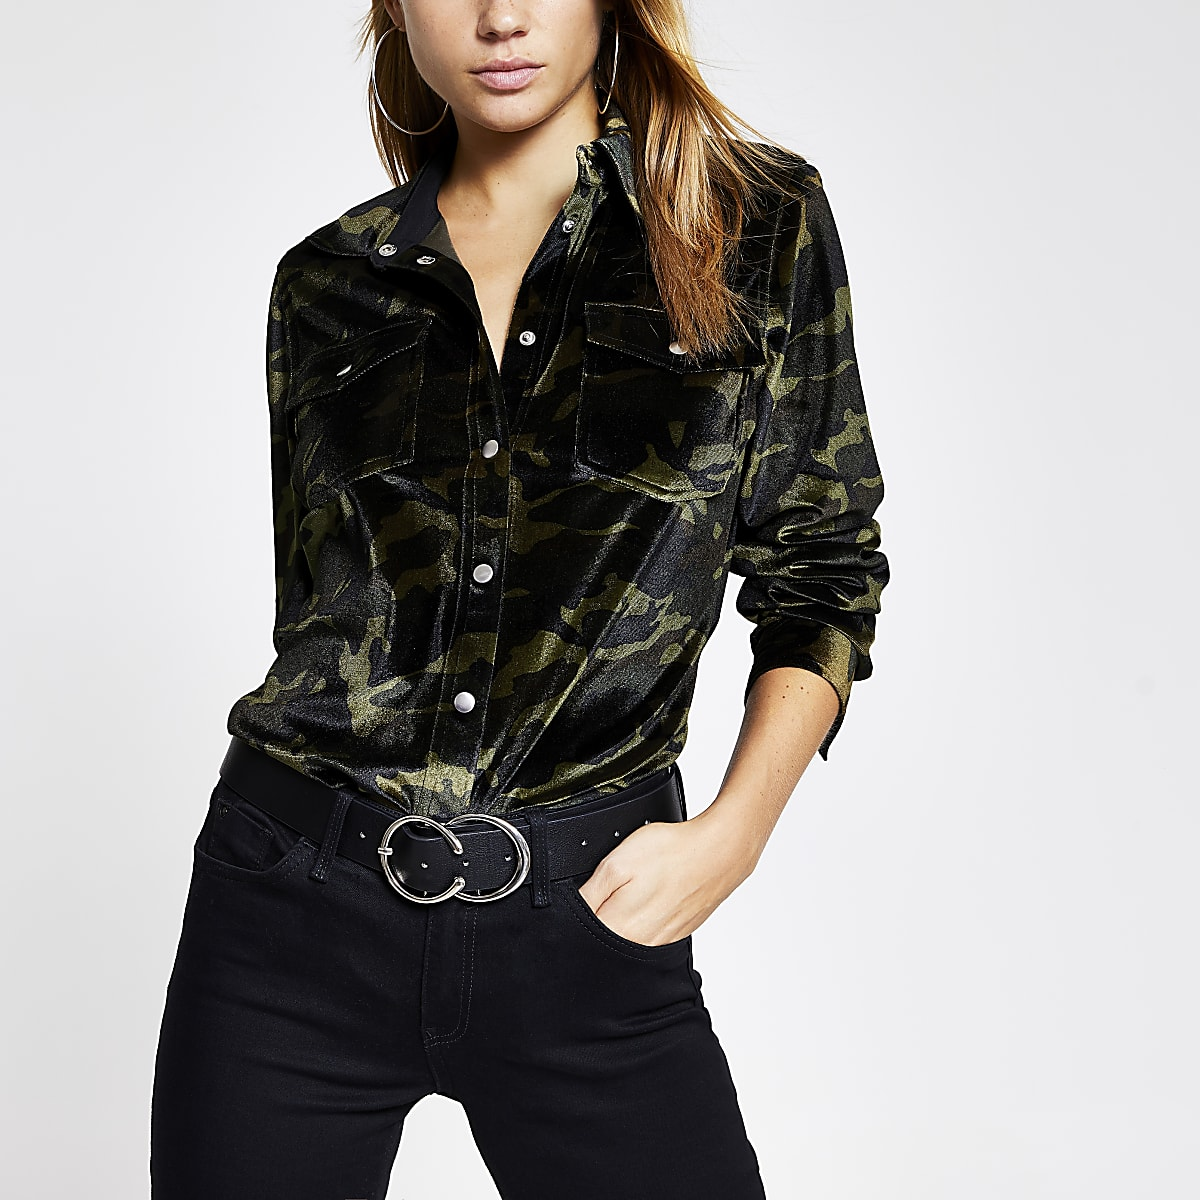 Green velvet camo long sleeve shirt